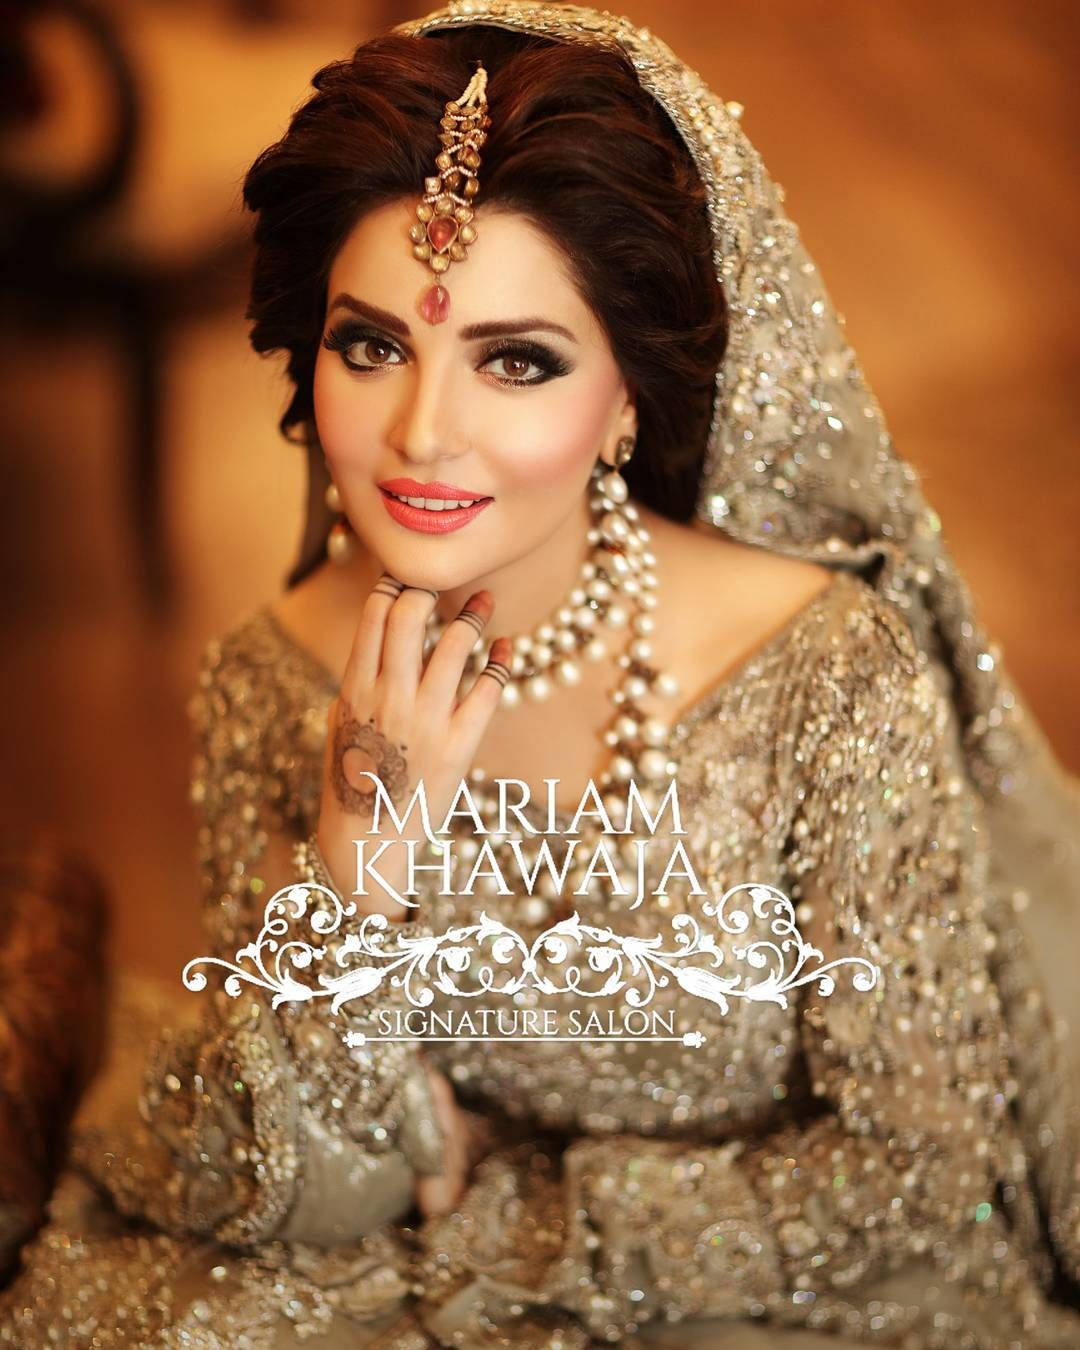 Bridal Makeup Salon 5 986 Likes 47 Comments Mariam Khawaja